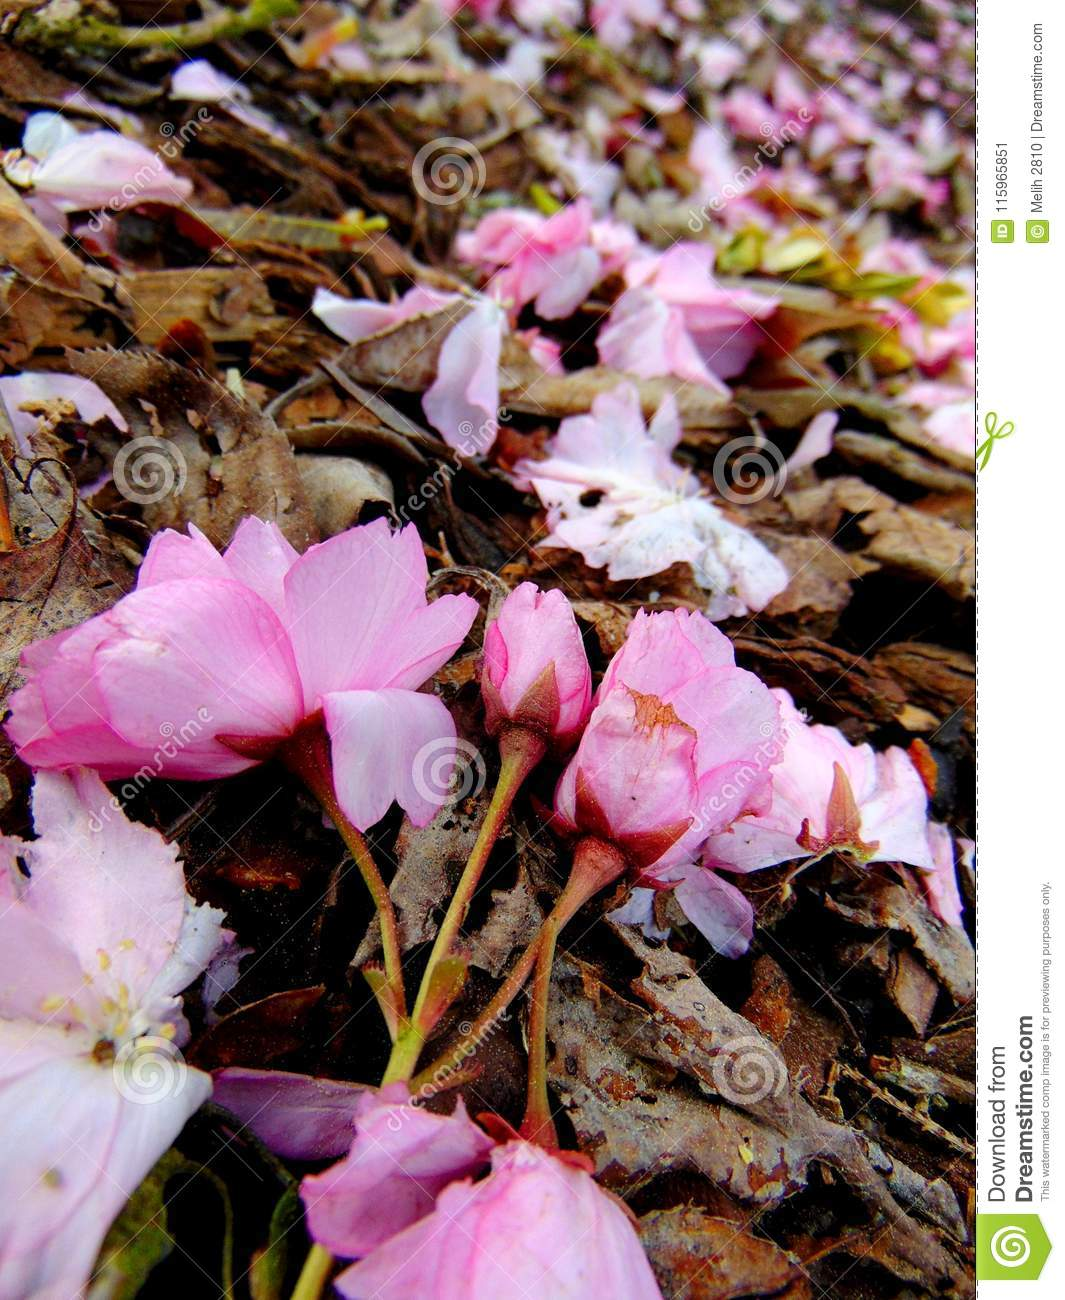 Pink cherry blossom petals laying on a ground of bark